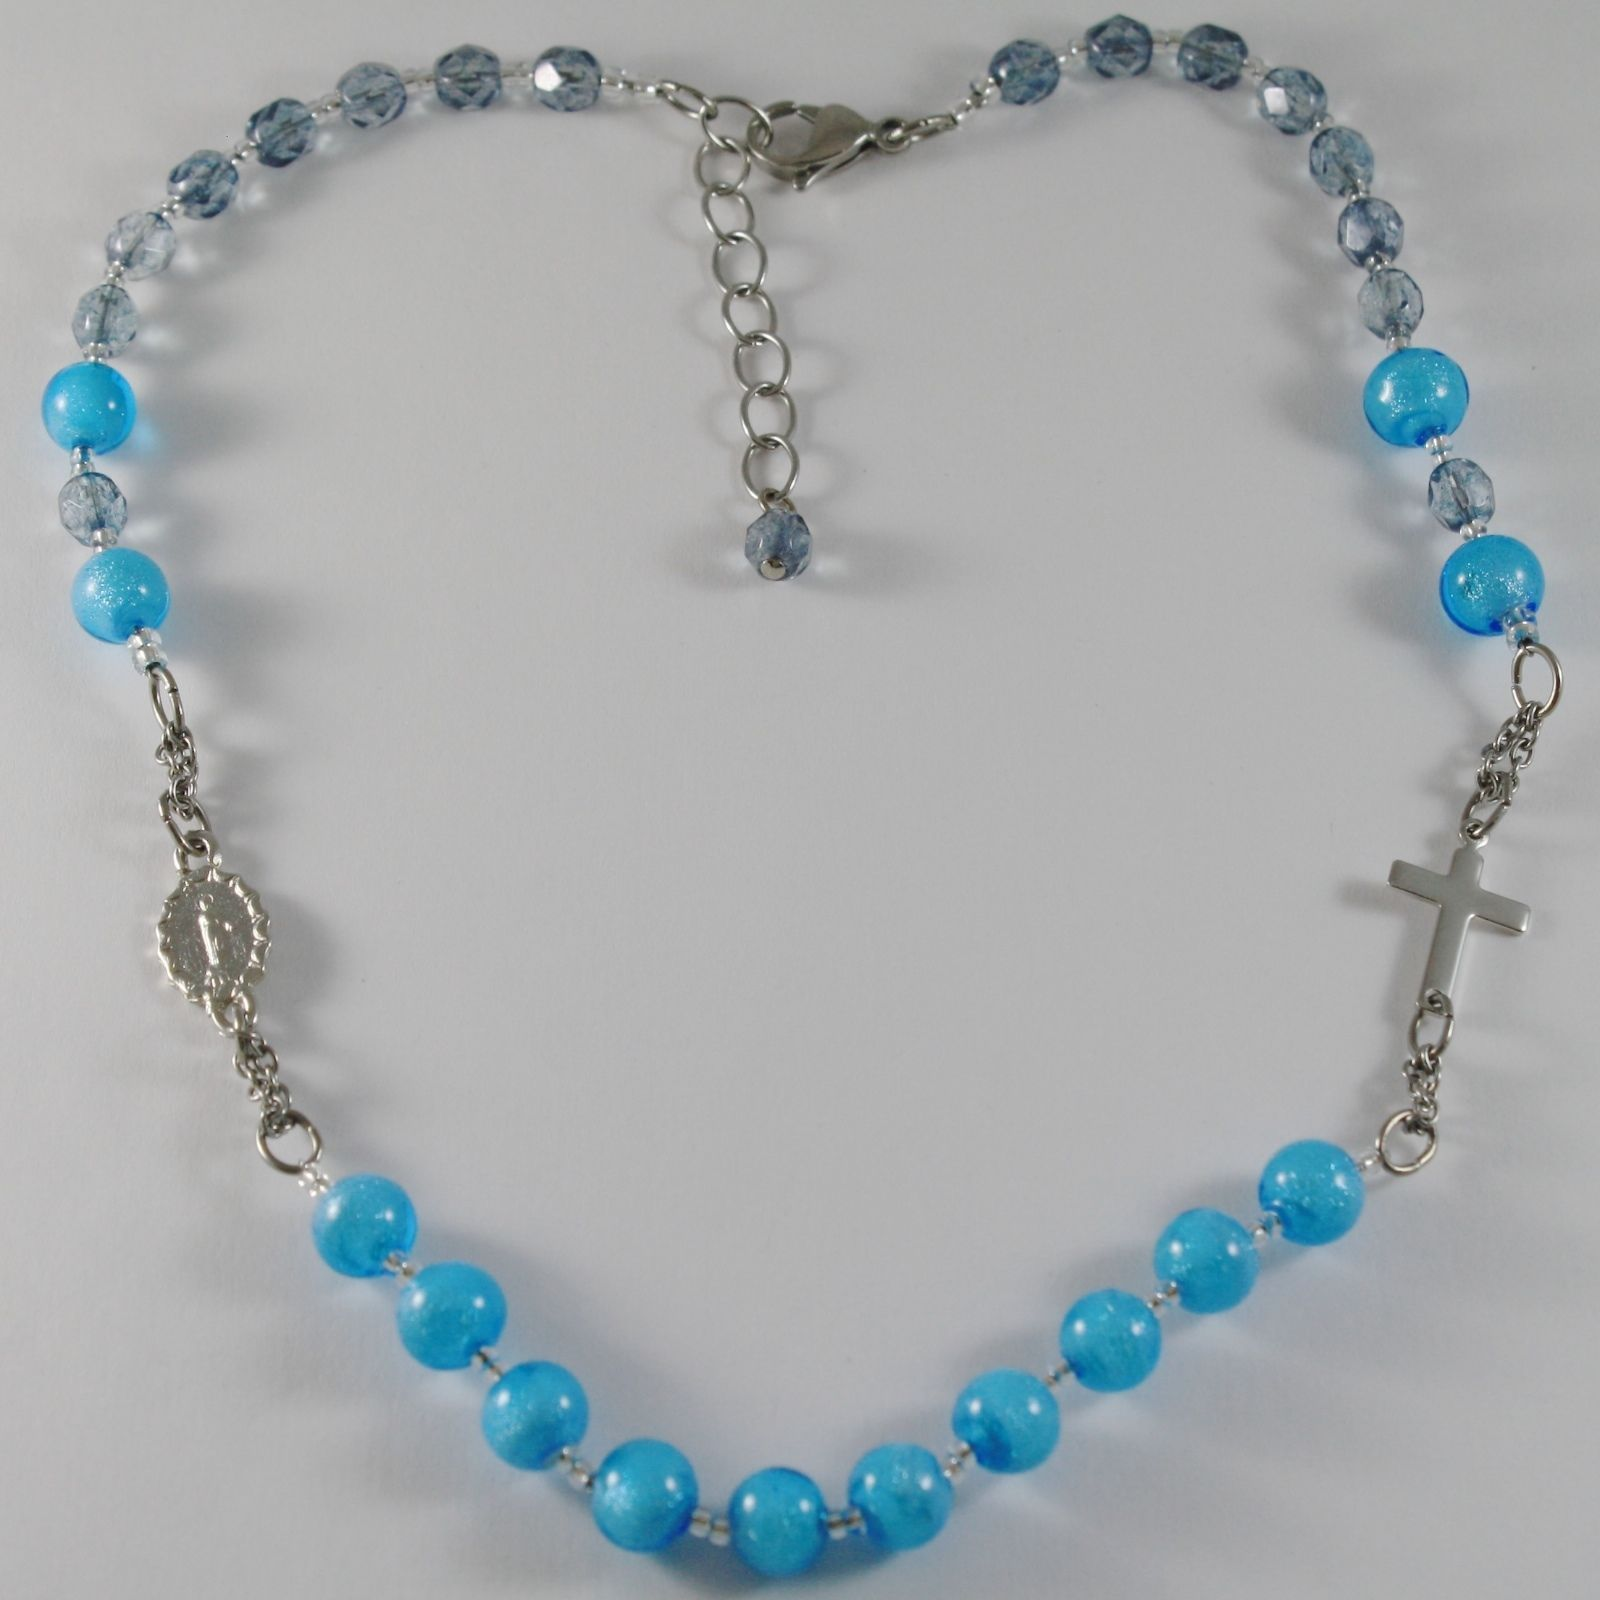 NECKLACE ANTICA MURRINA VENEZIA IN ROSARIO WITH MURANO GLASS BLUE WITH CROSS